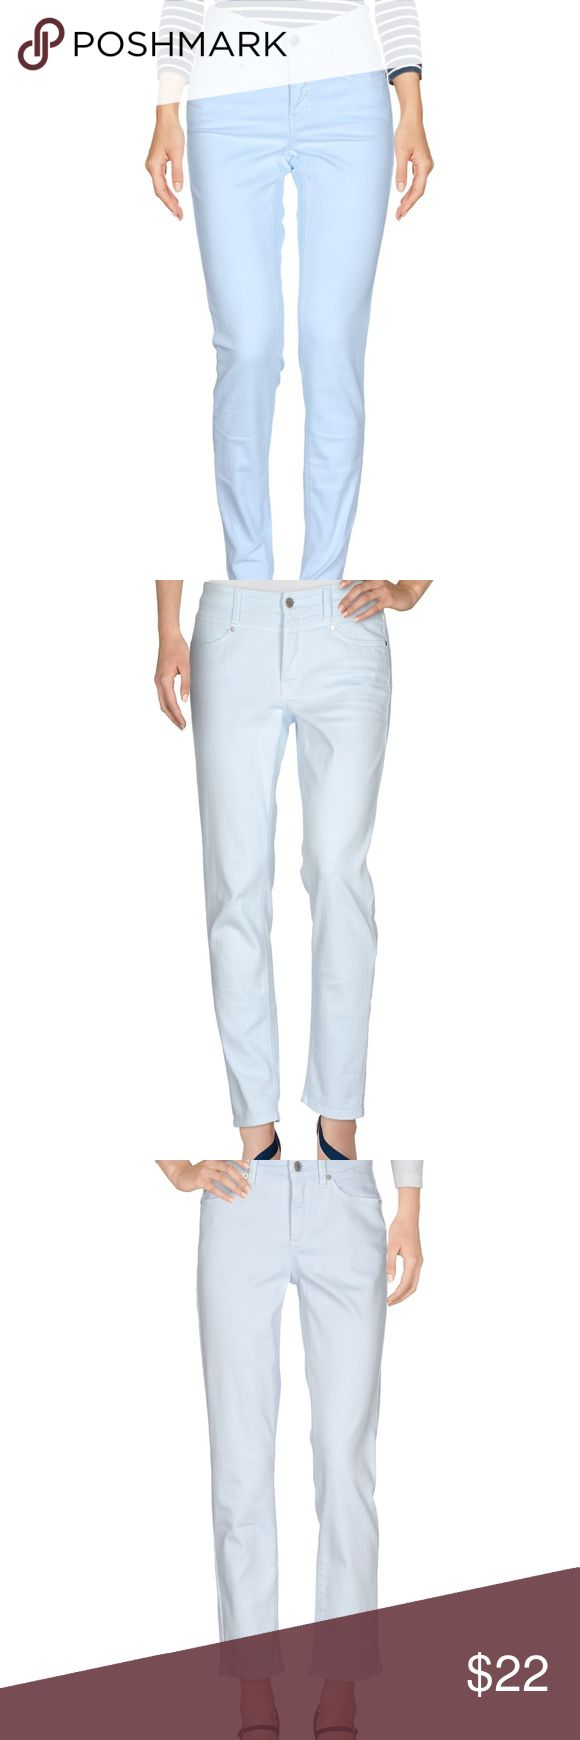 """Cambio Jeans -  #1 Jeans - Oprah's Favorite Things Voted """"best fitting  Jeans,"""" these Cambio jeans stretch to your curves. Measurements laying flat: 26"""" waist, 36"""" hips and 30"""" inseam. For best fit, size down and let the stretch go to work for you to make you appear to be one size smaller! Cambio Jeans Straight Leg"""